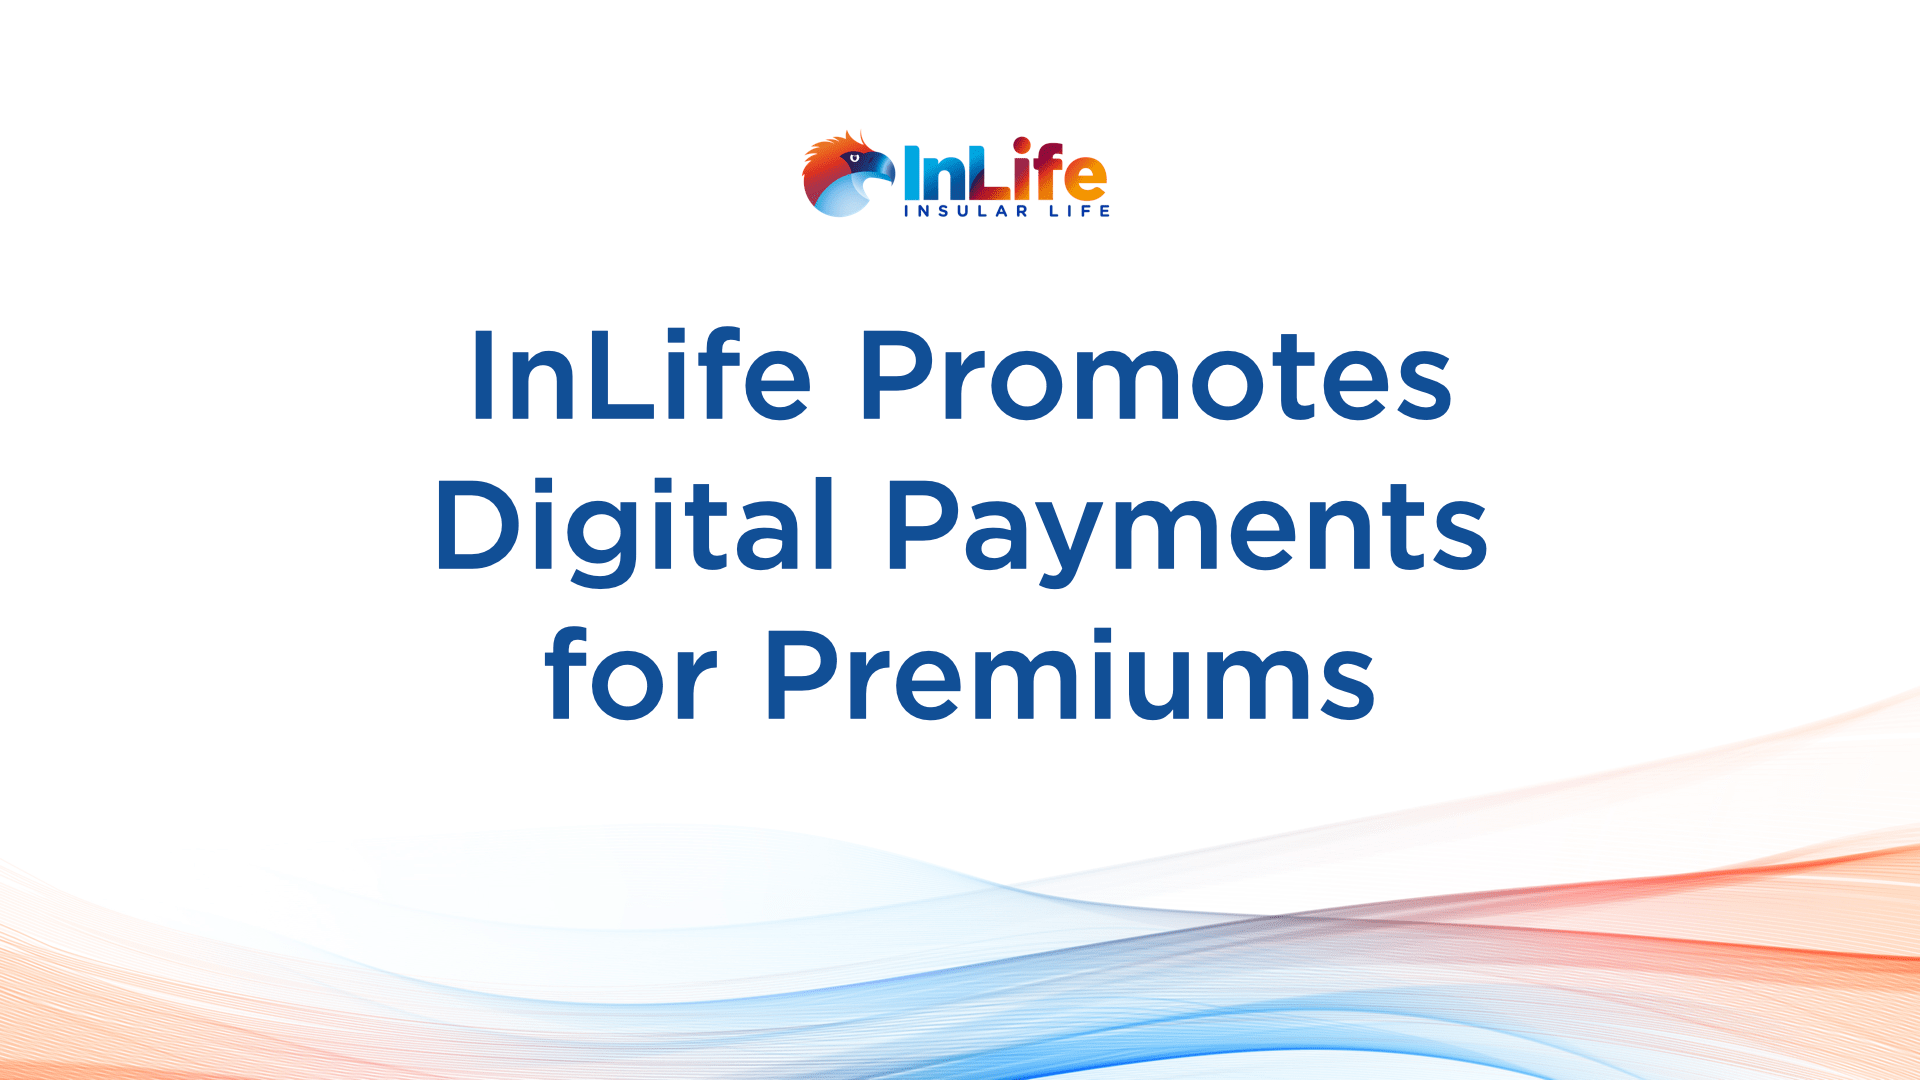 InLife Pushes for Digital Payments for Premiums